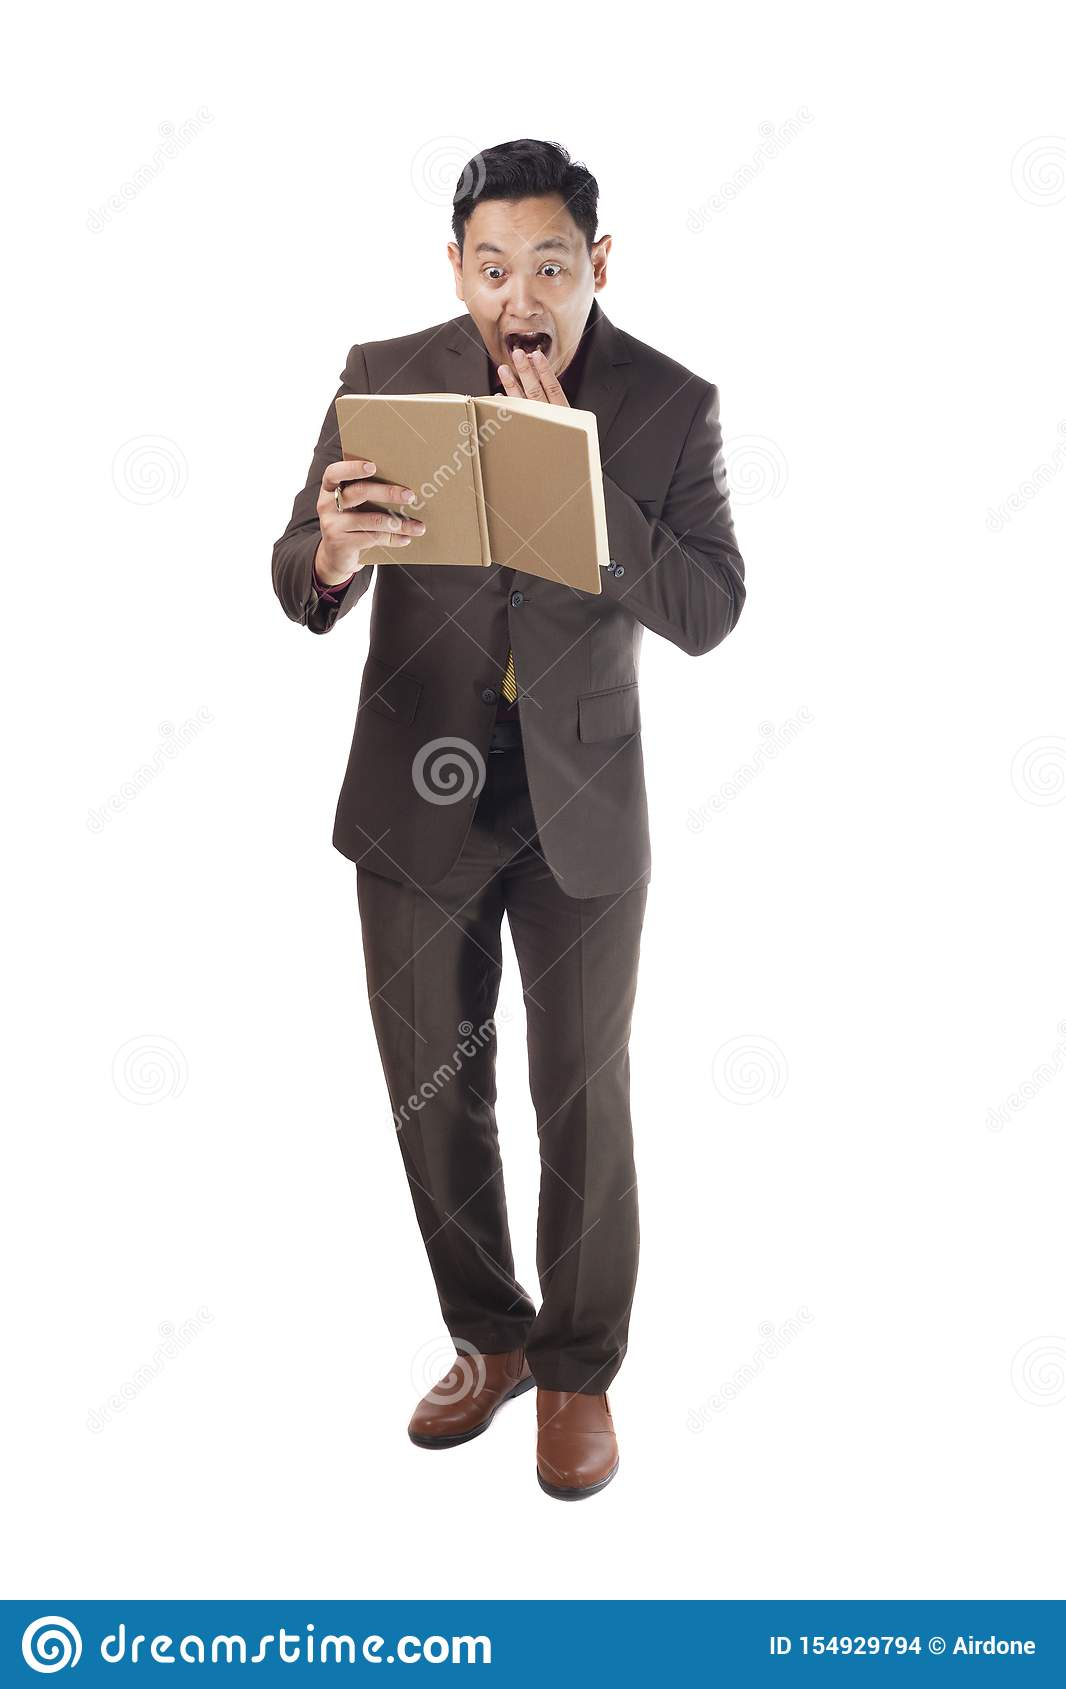 Asian Man Shocked Surprised When Reading a Book